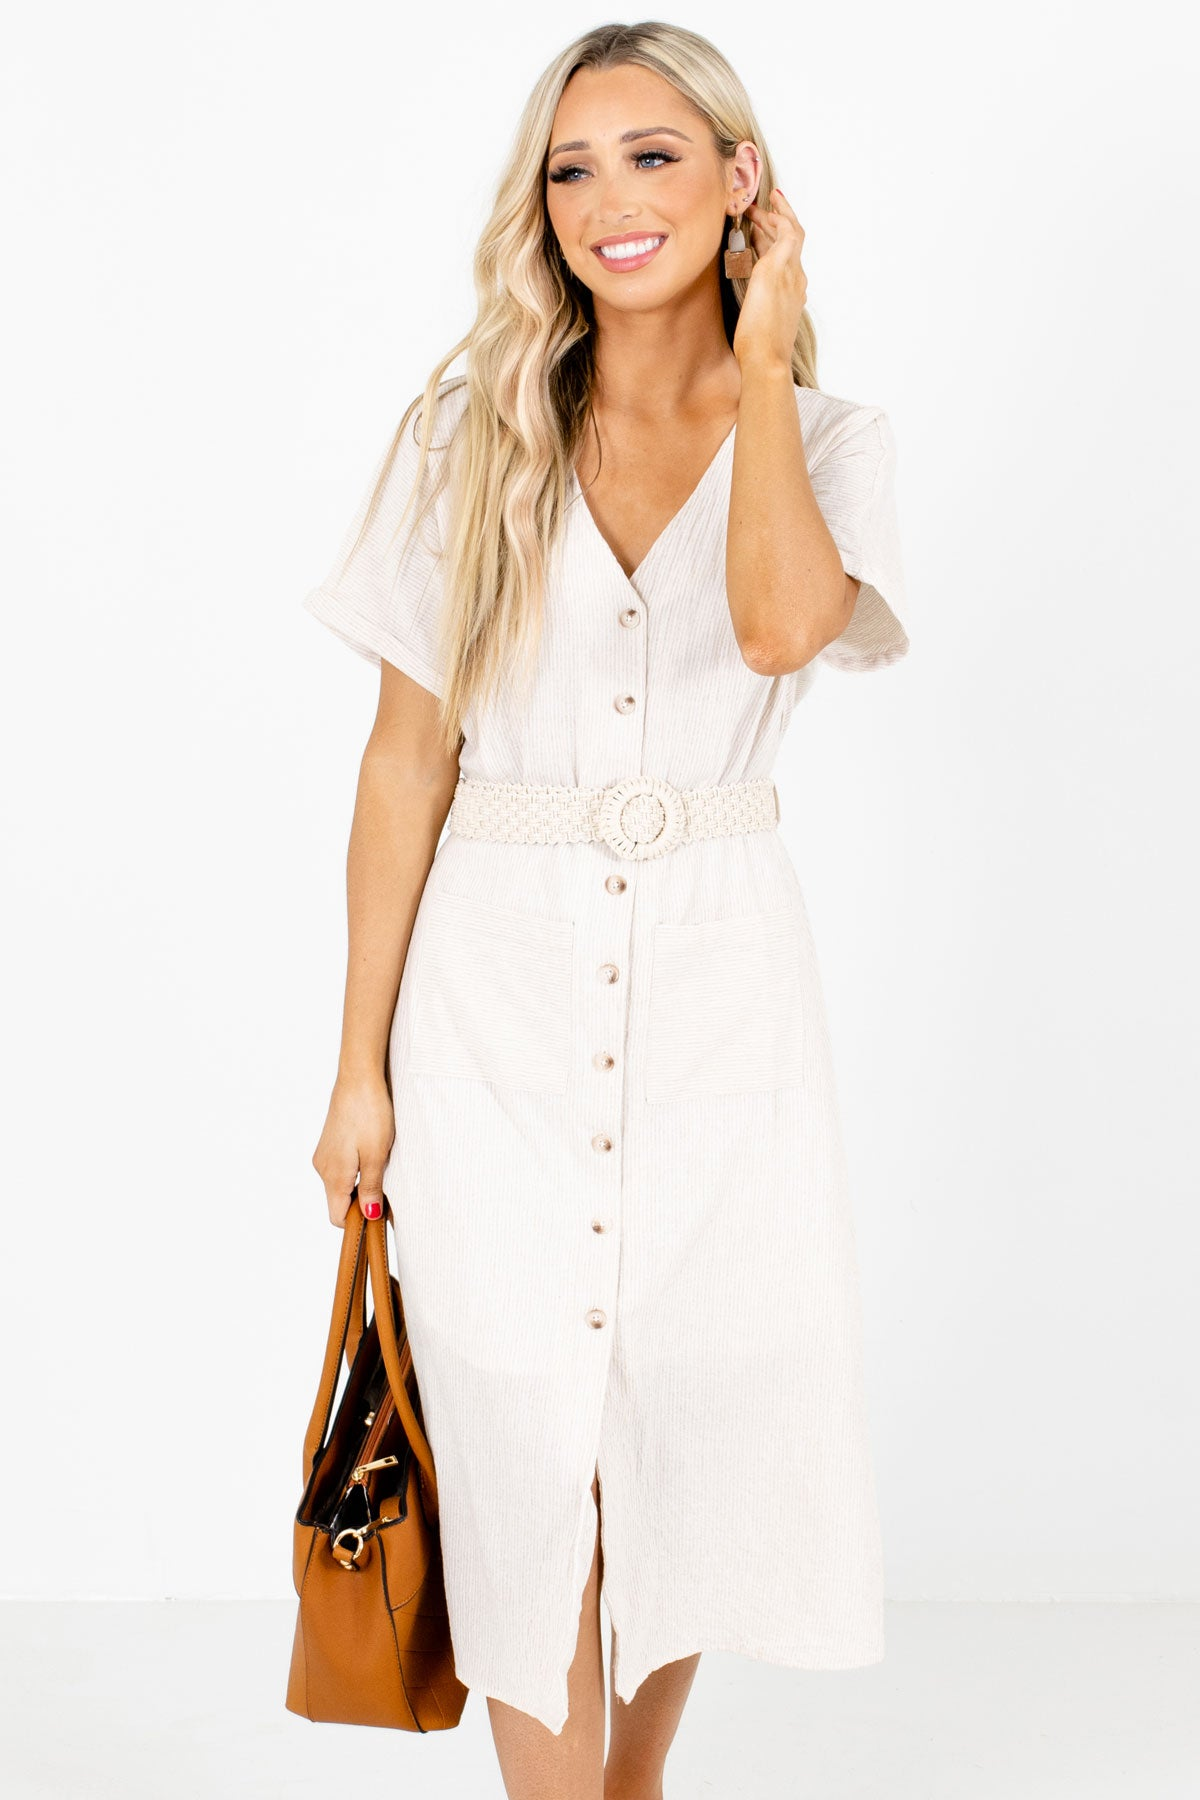 Beige Button-Up Front Boutique Midi Dresses for Women